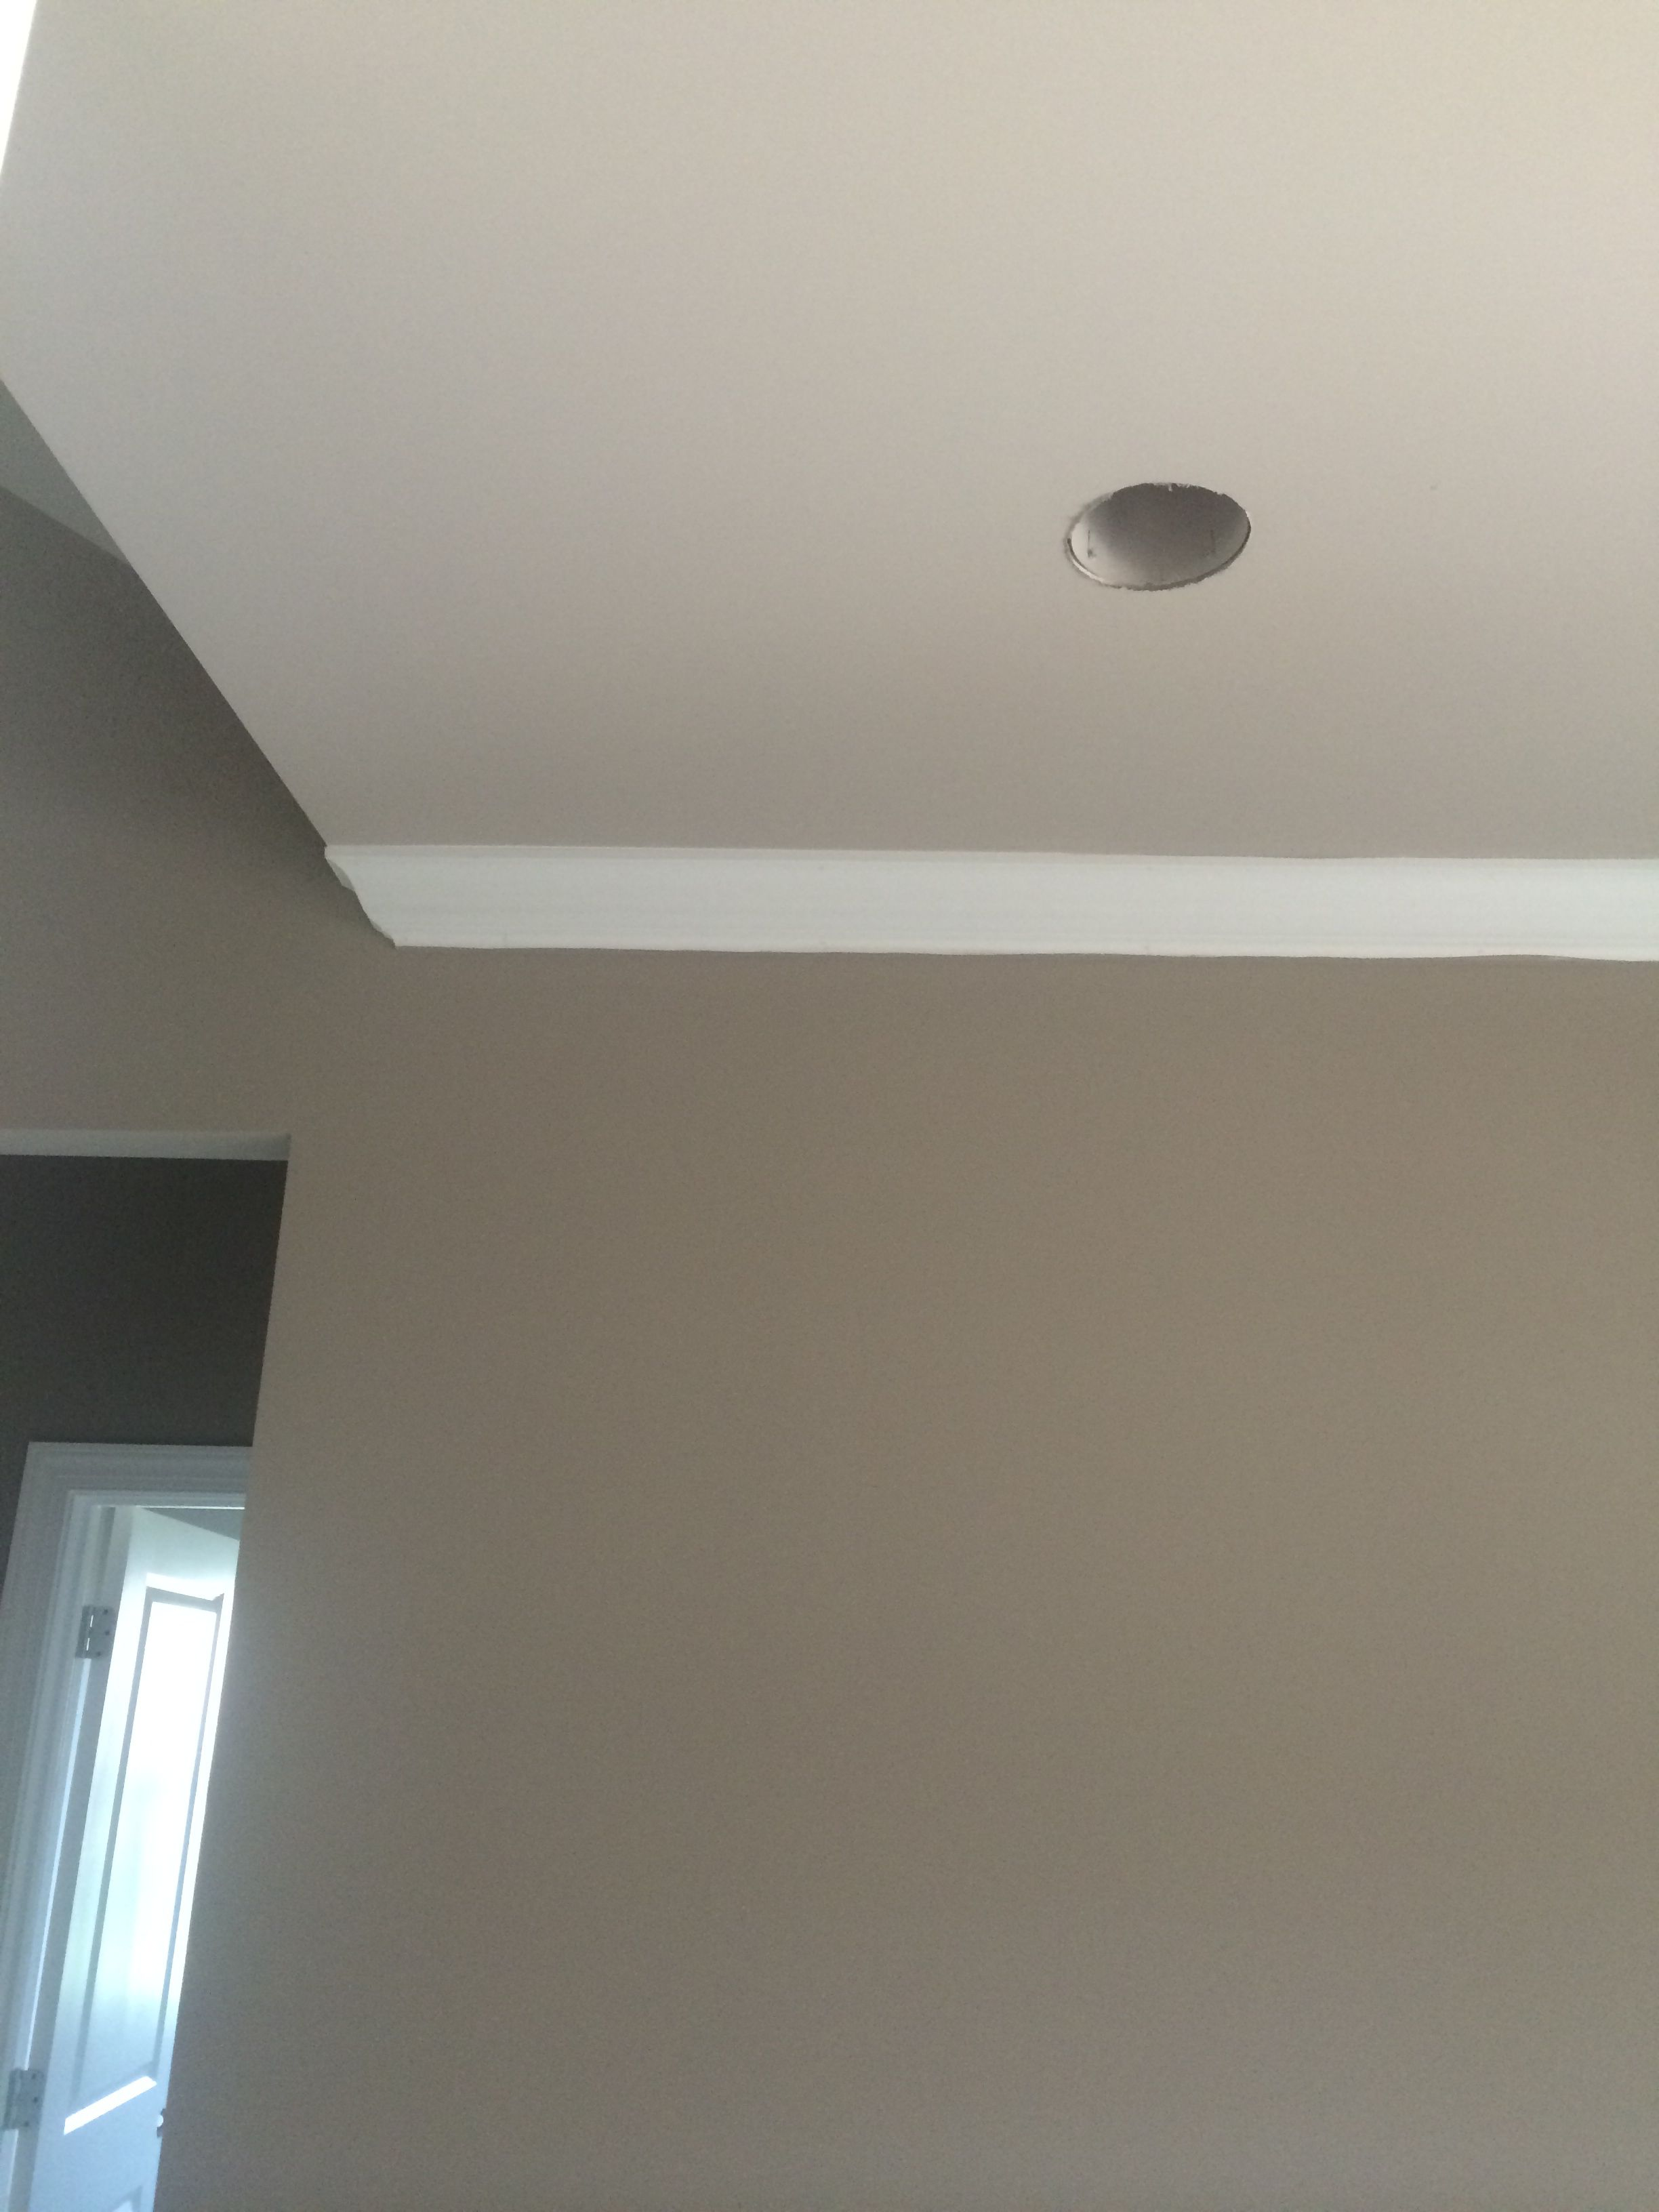 Sherwin Williams Mega Greige with Sherwin Williams anew gray ceiling